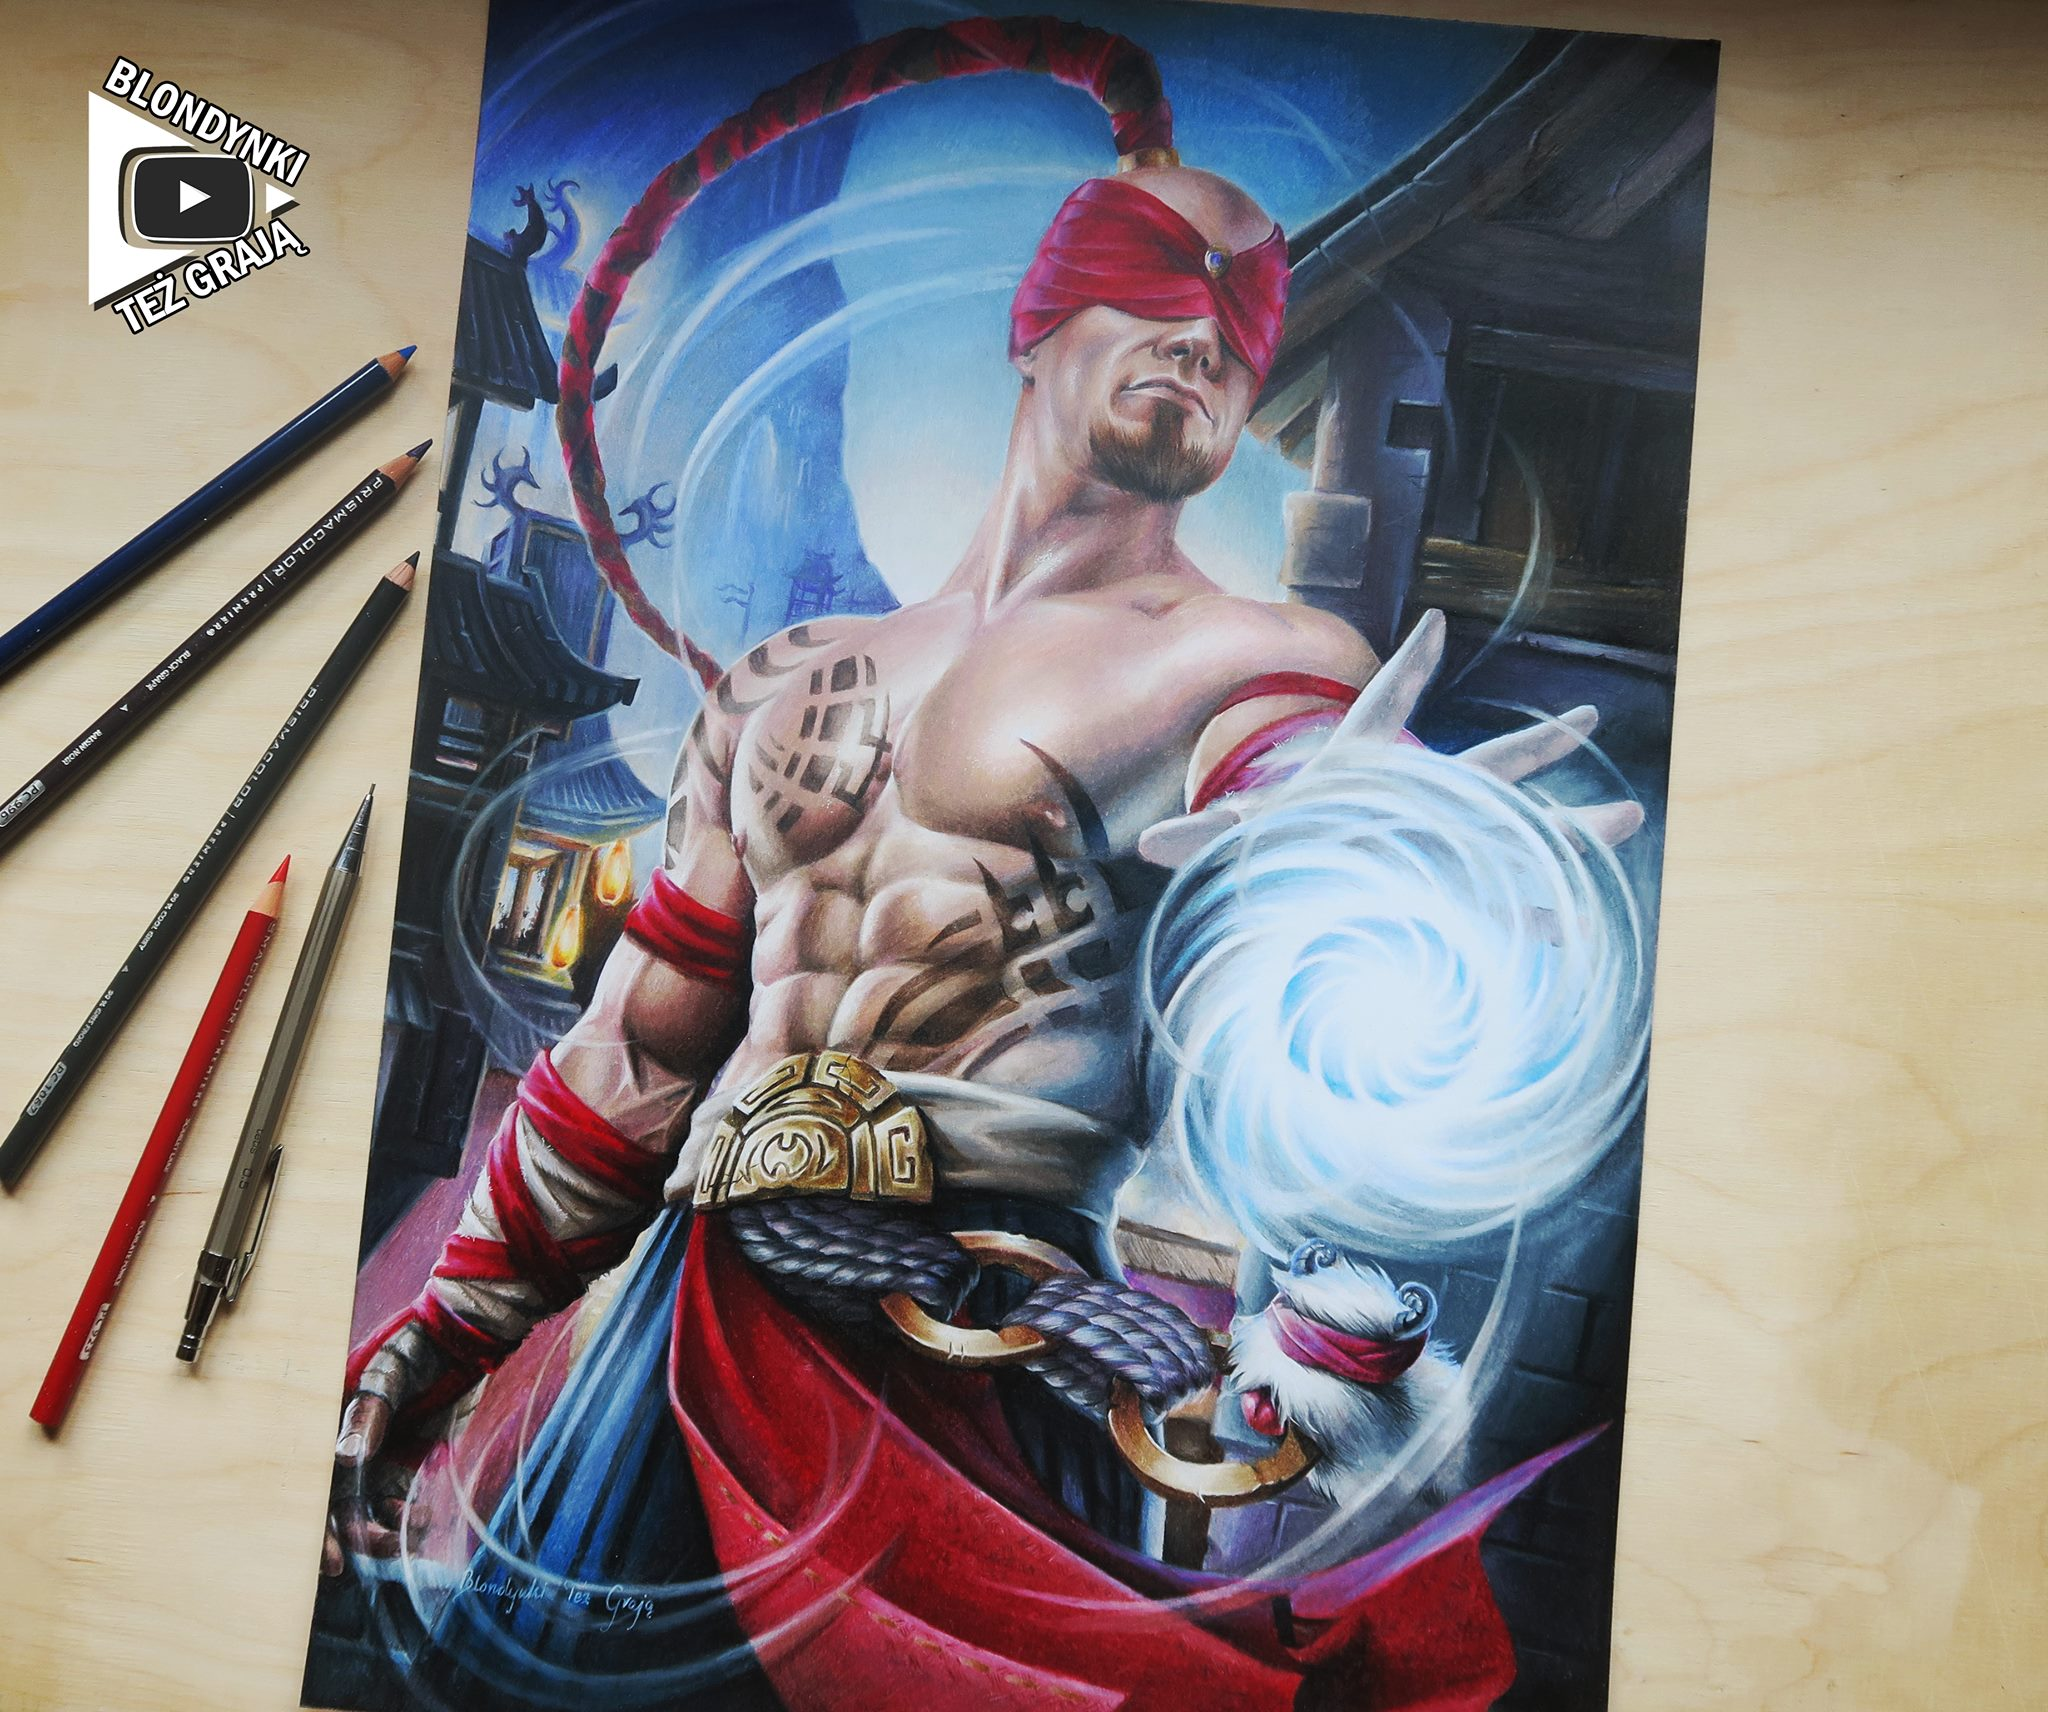 Lee Sin drawing by Blondynki Też Grają - League of Legends art